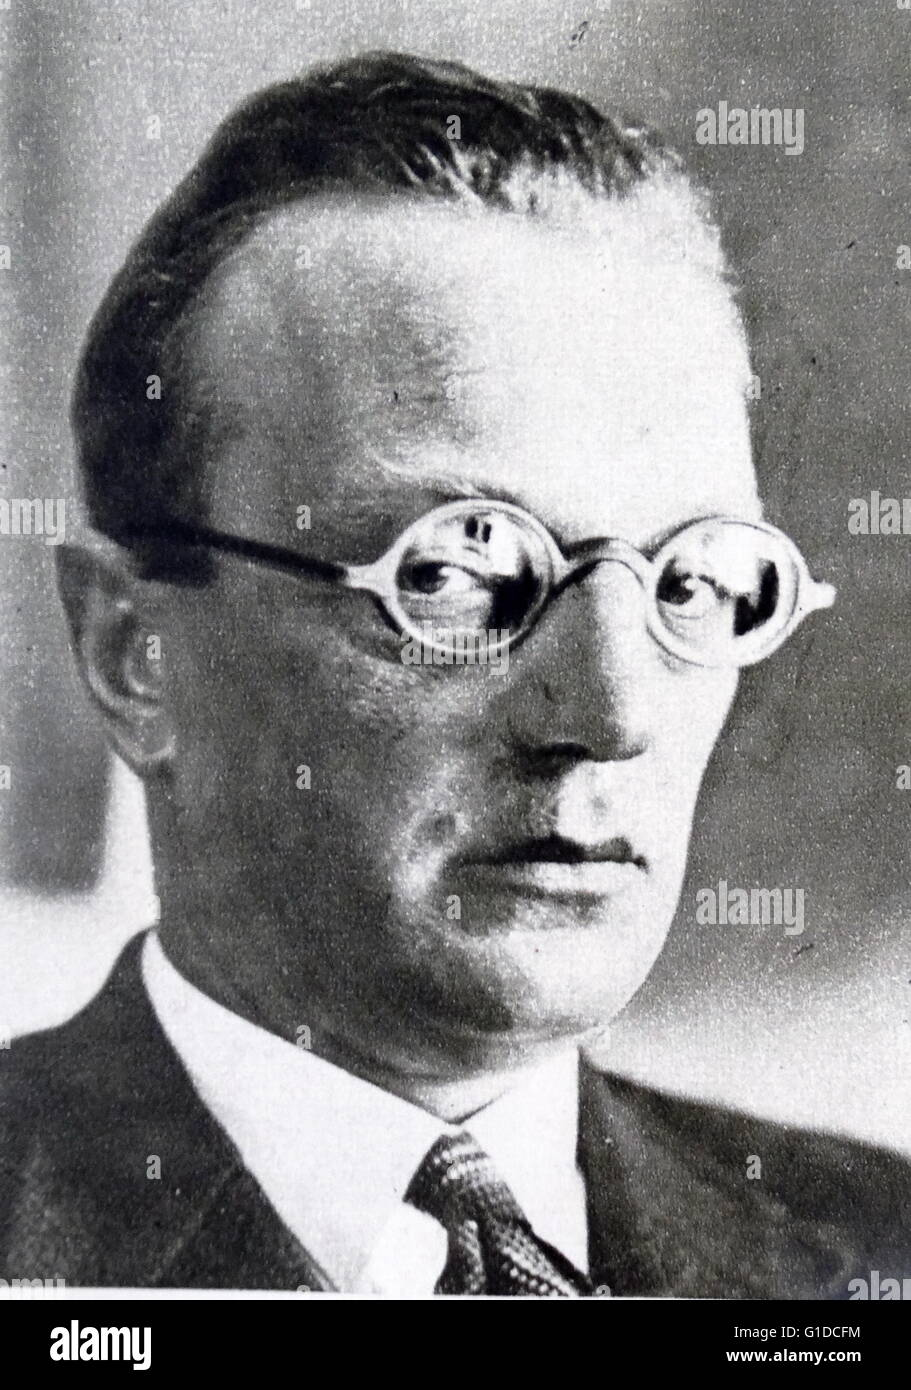 Photographic portrait of Arthur Seyss-Inquart (1892-1946) an Austrian Nazi politician who served as Chancellor of Stock Photo